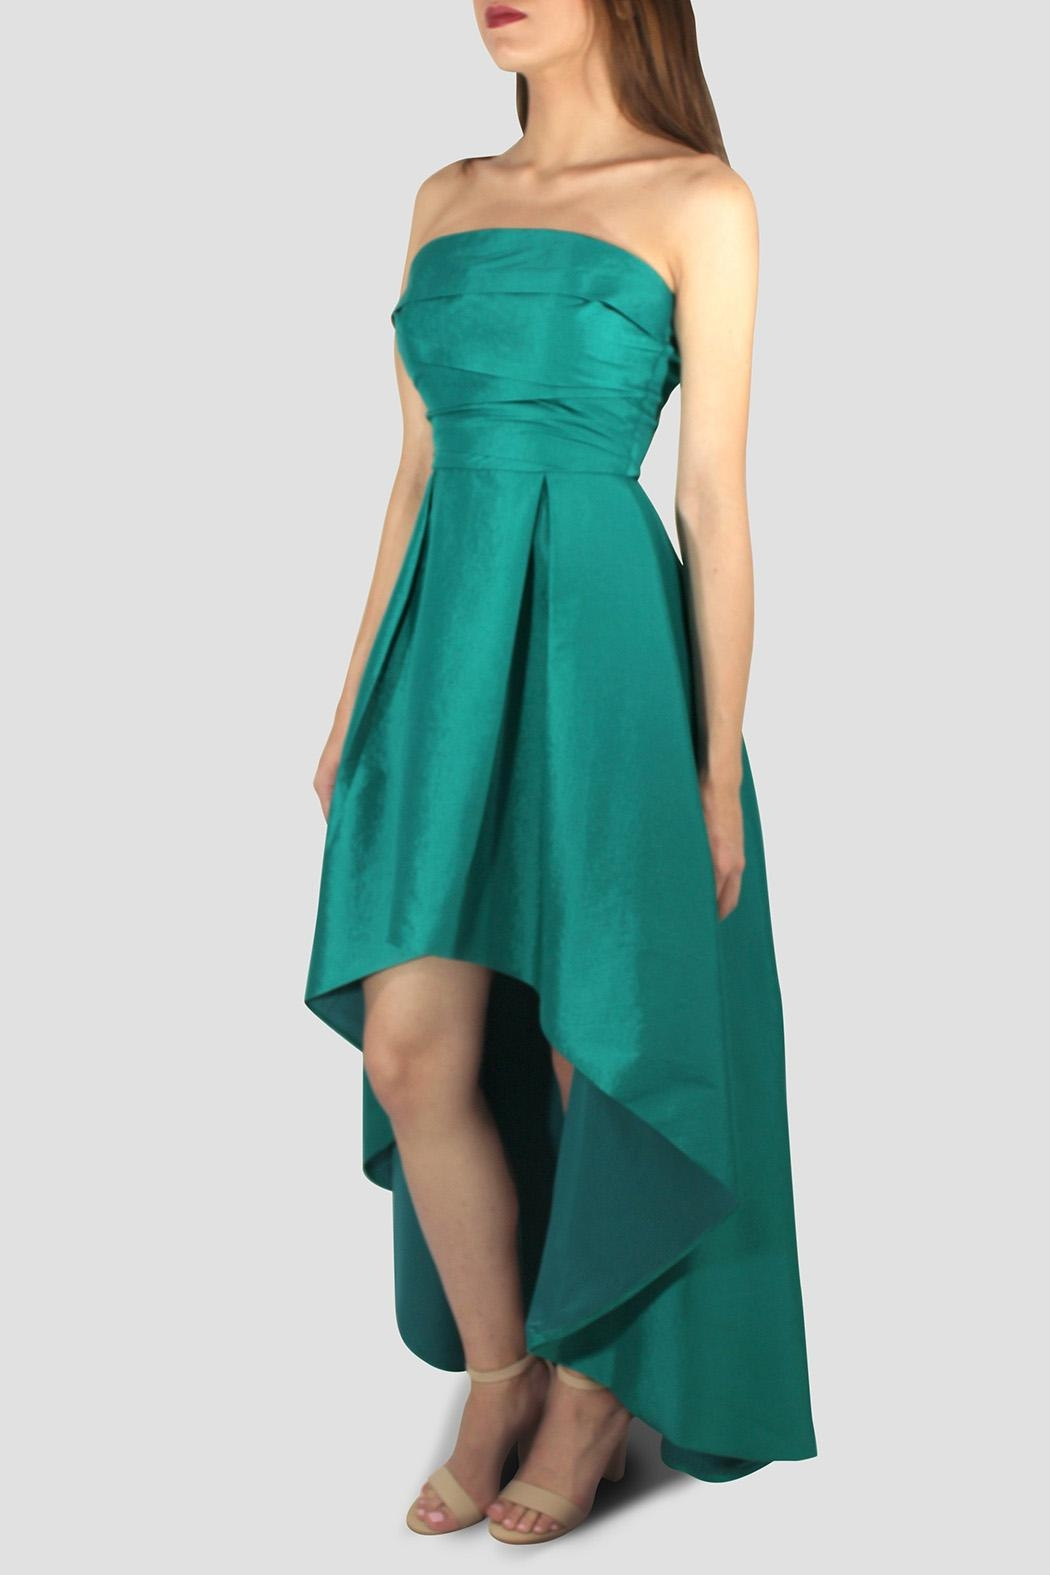 SoZu High-Low Draped Strapless - Front Full Image